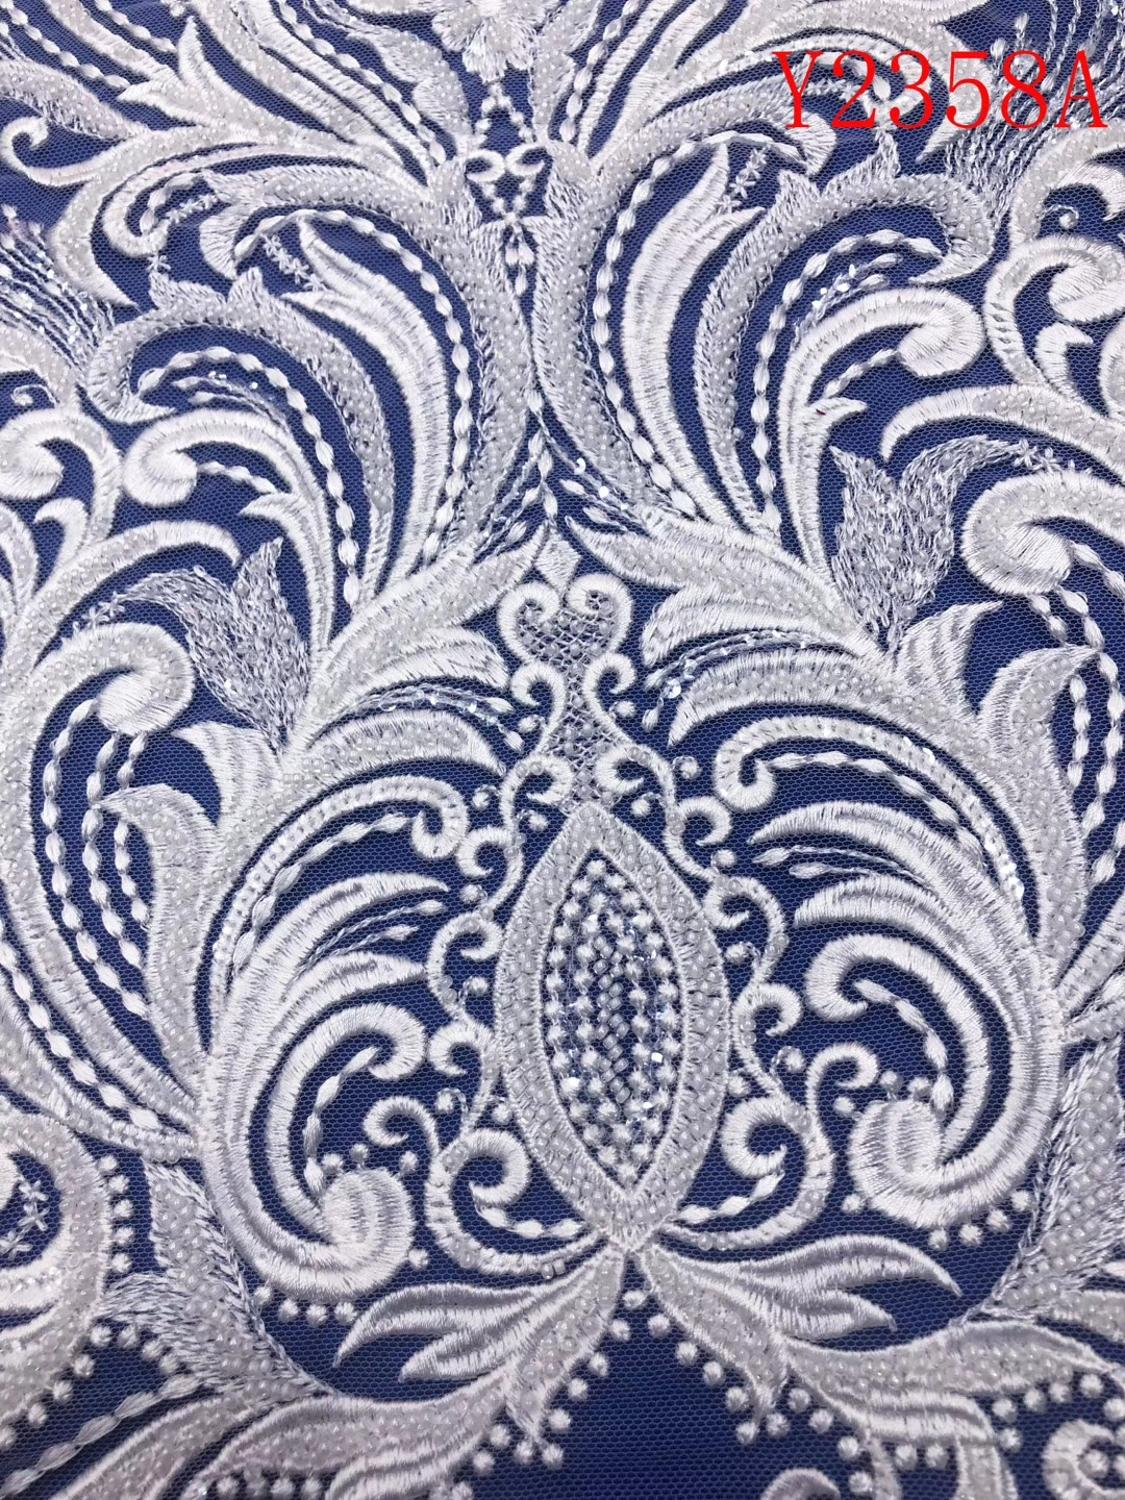 ÒPromoteWedding-Dress Fabric Nigerian-Textile Lace African Y2358A Trimming Embroidery Beaded